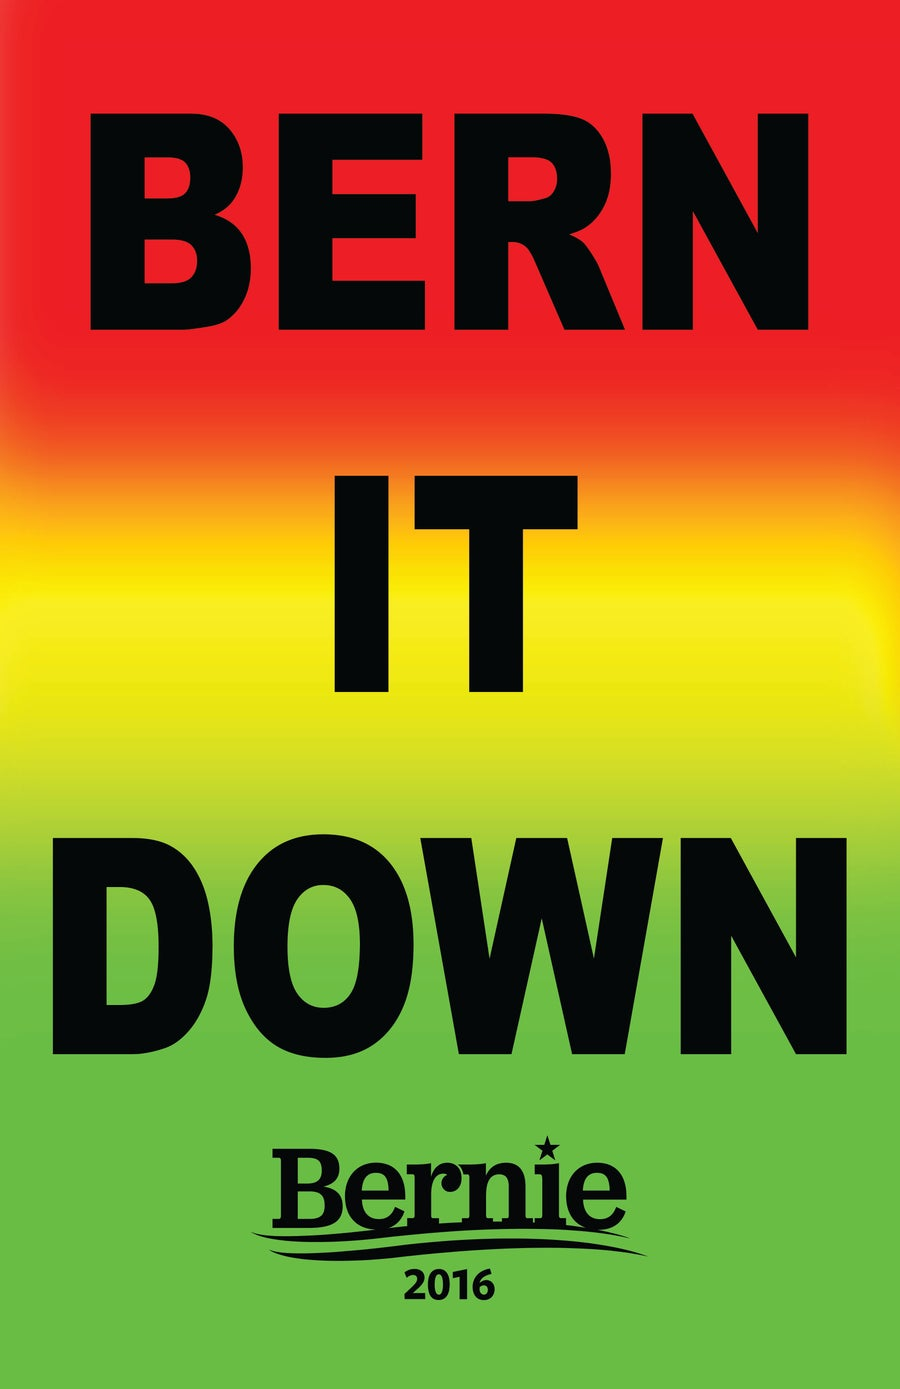 Image of BERN IT DOWN poster